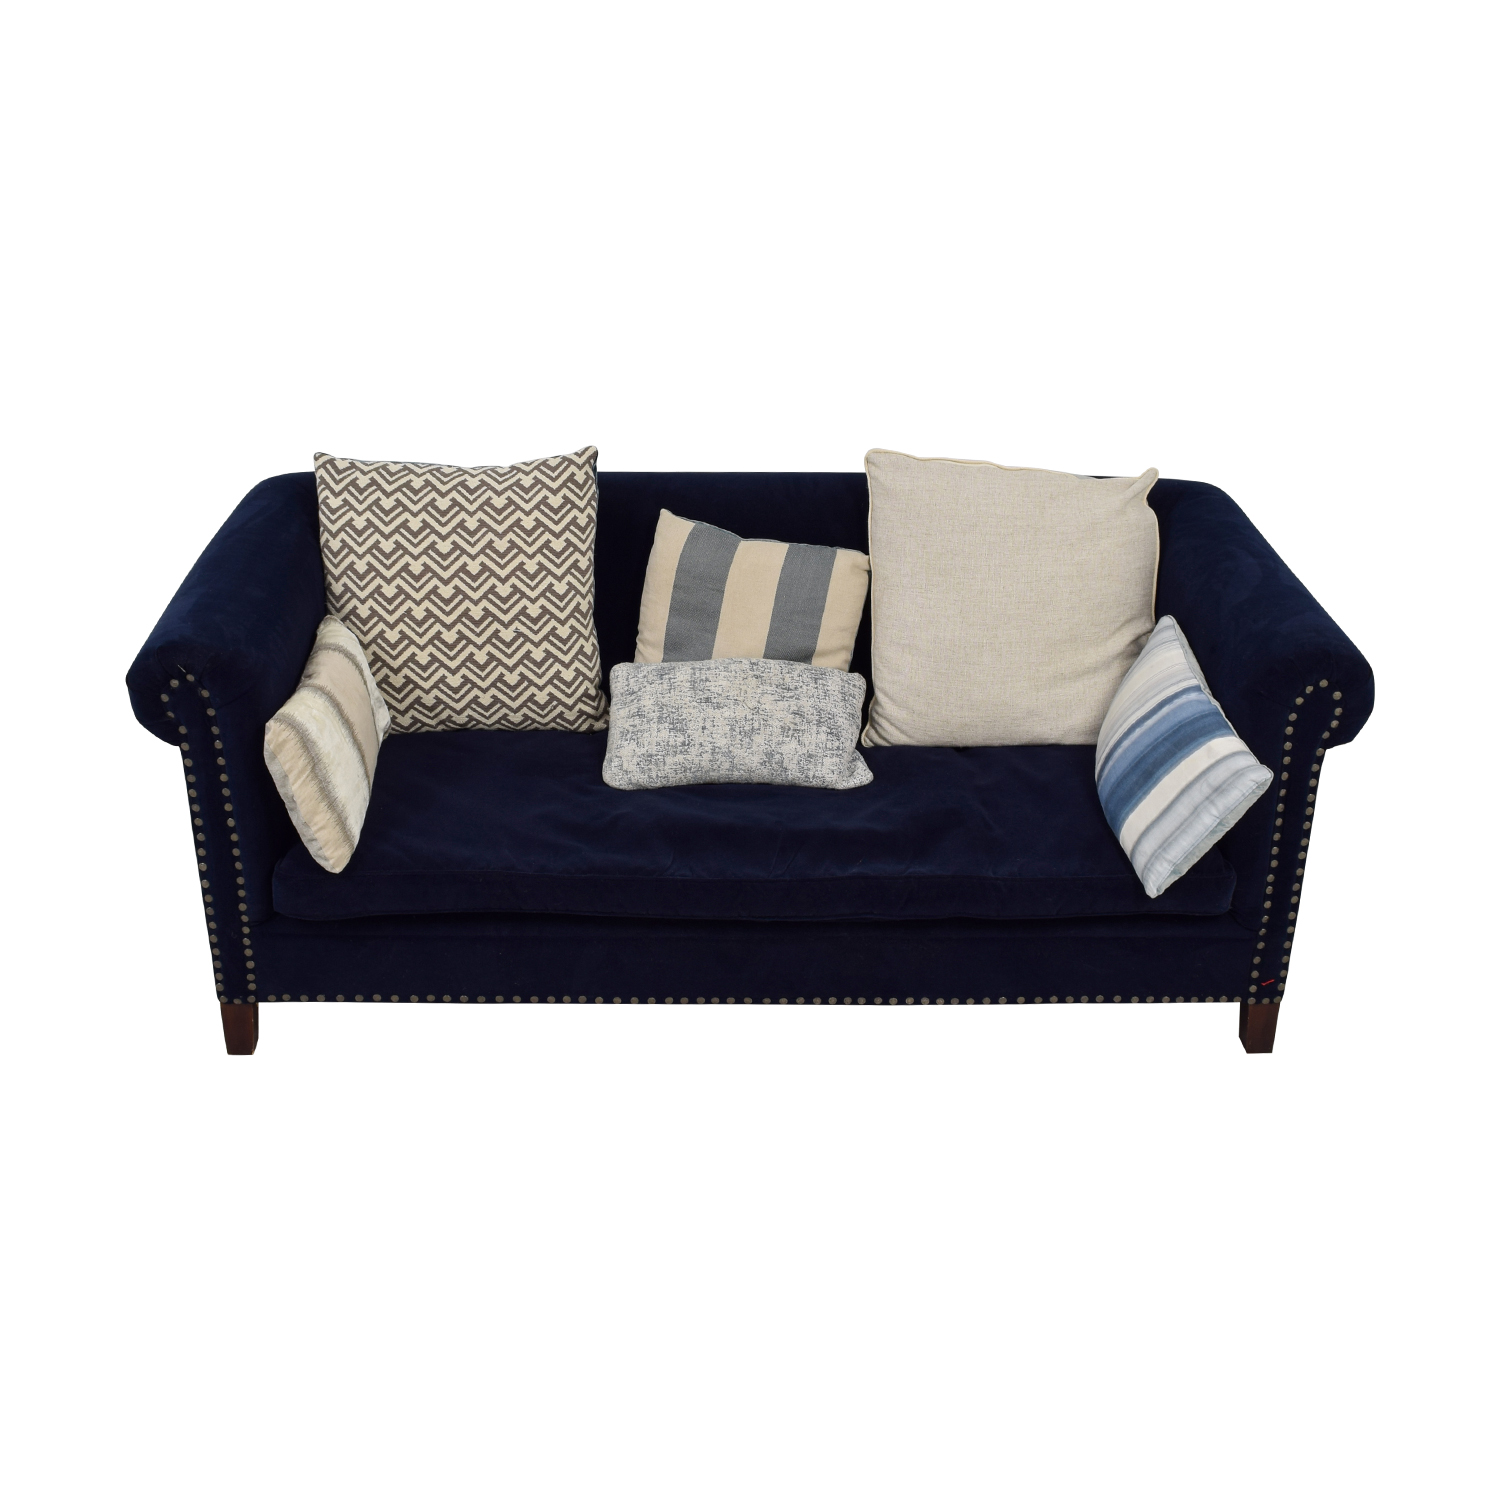 buy Ralph Lauren Blue Low-Pile Velvet Nailhead Sofa Ralph Lauren Sofas